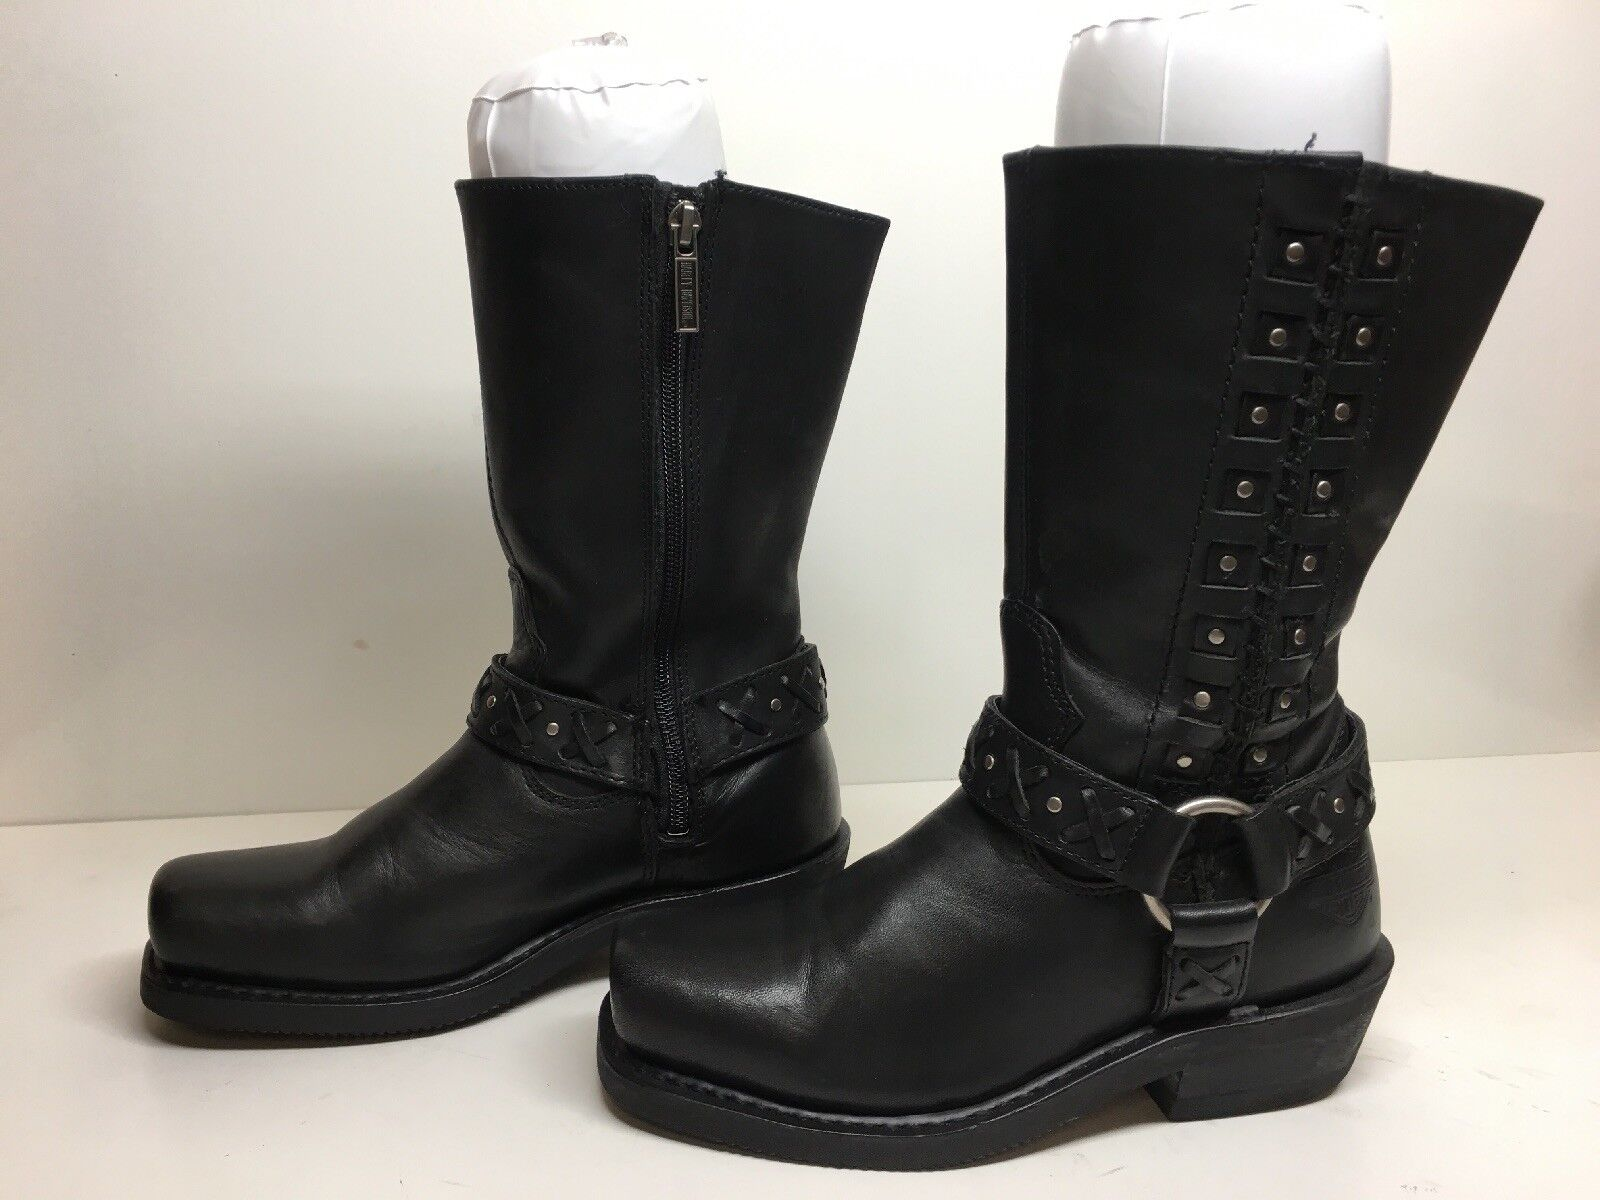 VTG WOMENS HARLEY DAVIDSON SQUARE TOE HARNESS MOTORCYCLE BLACK BOOTS SIZE 6.5